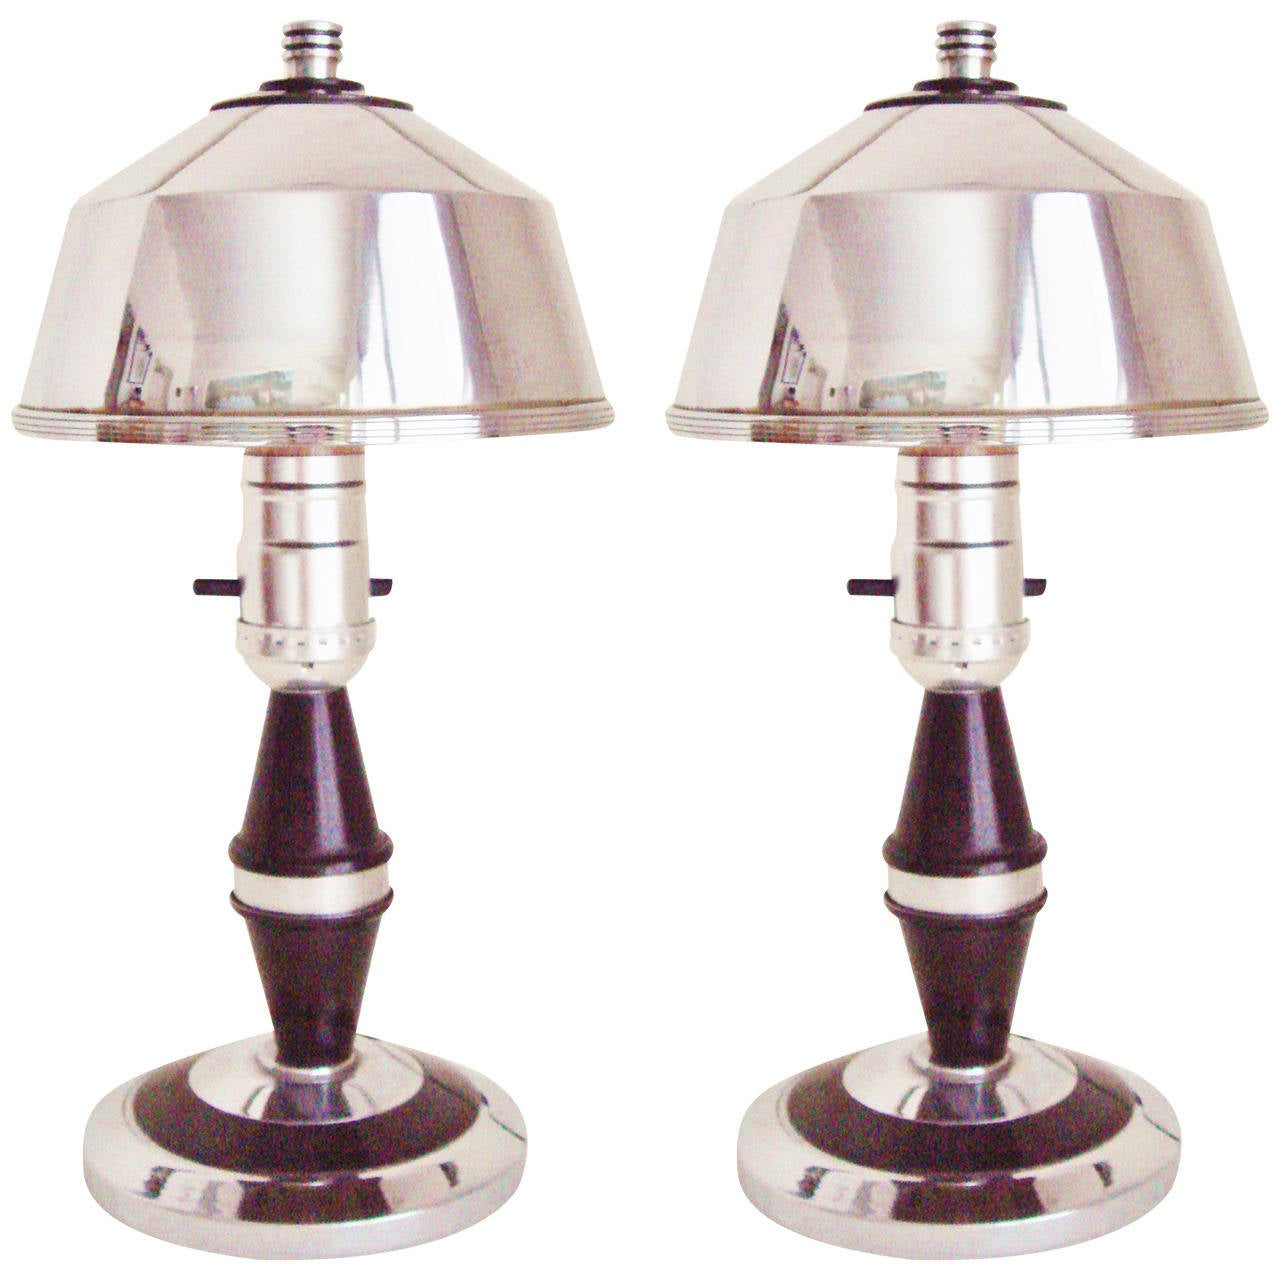 Rare Pair of American Art Deco or Machine Age Chrome and Black Boudoir Lamps For Sale